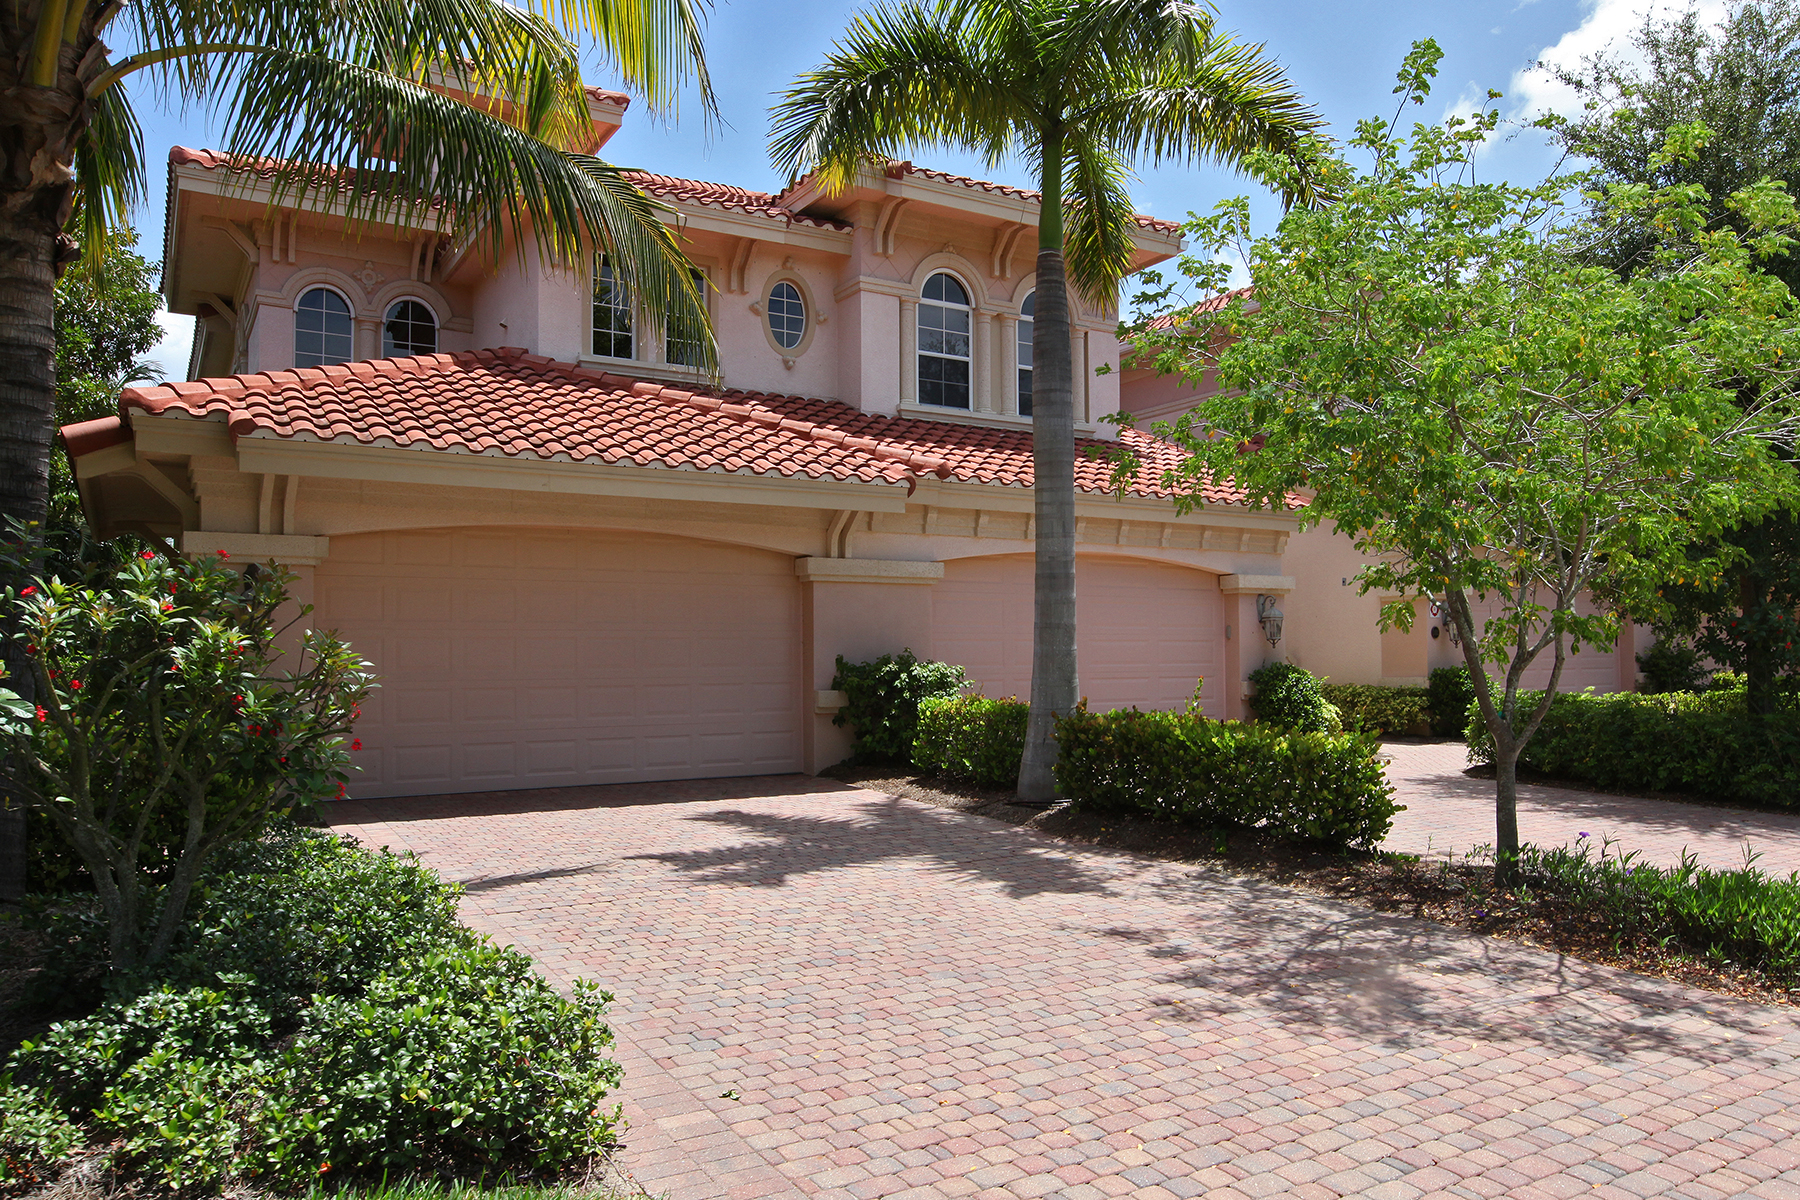 Condominium for Sale at FIDDLER'S CREEK - SERENA 3185 Aviamar Cir 201 Naples, Florida, 34114 United States